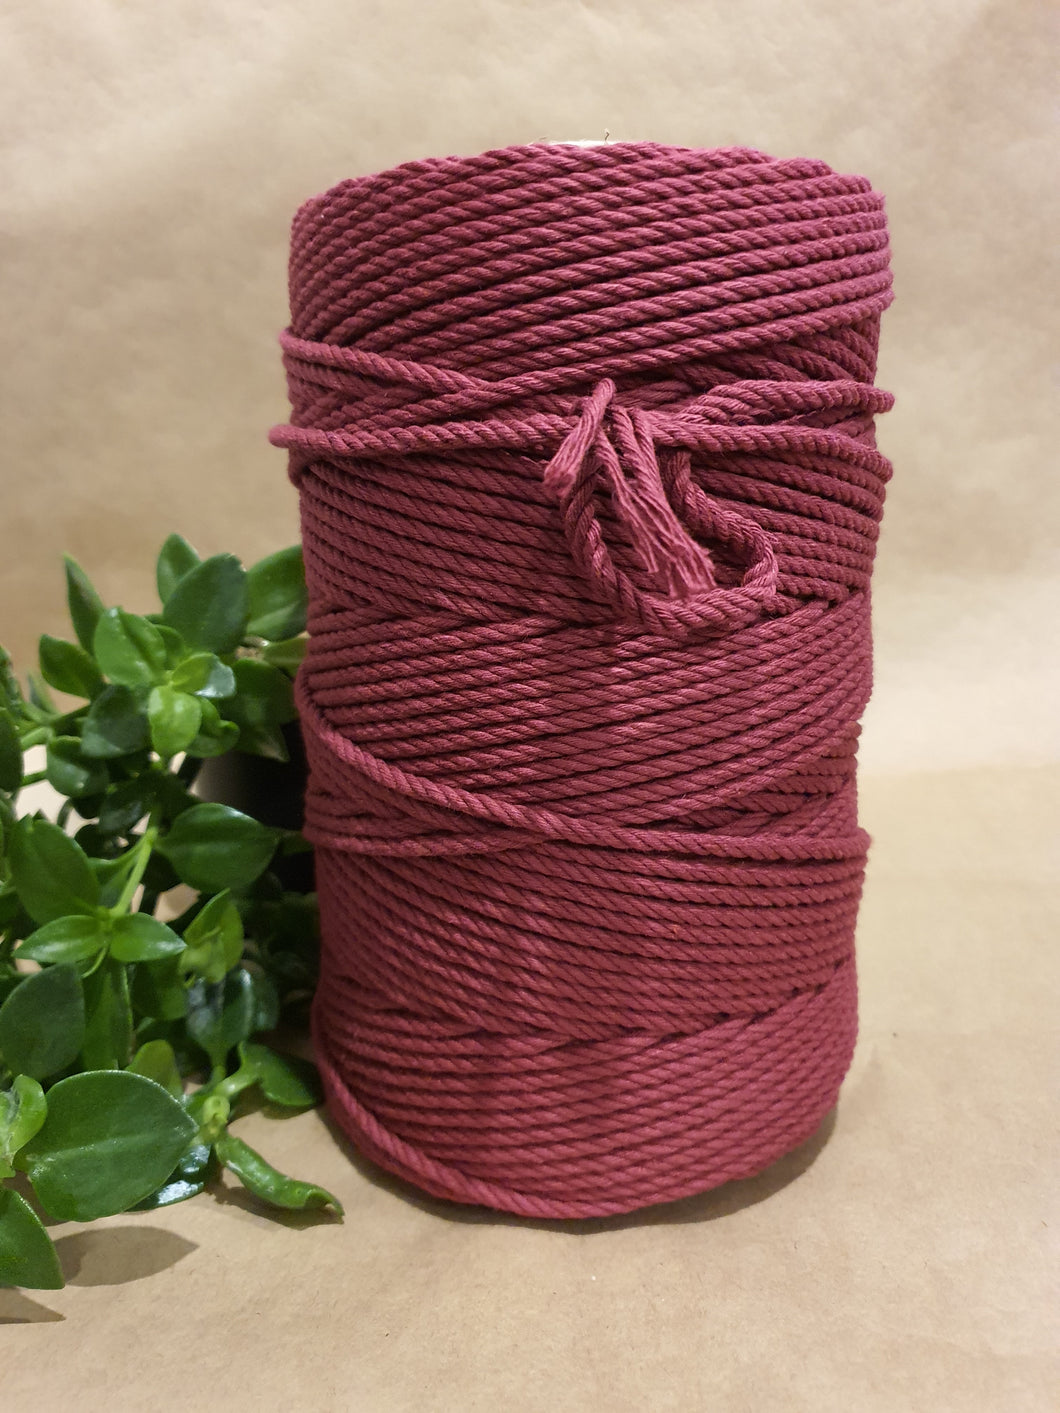 4.5mm Cotton Macrame Cord: Maroon